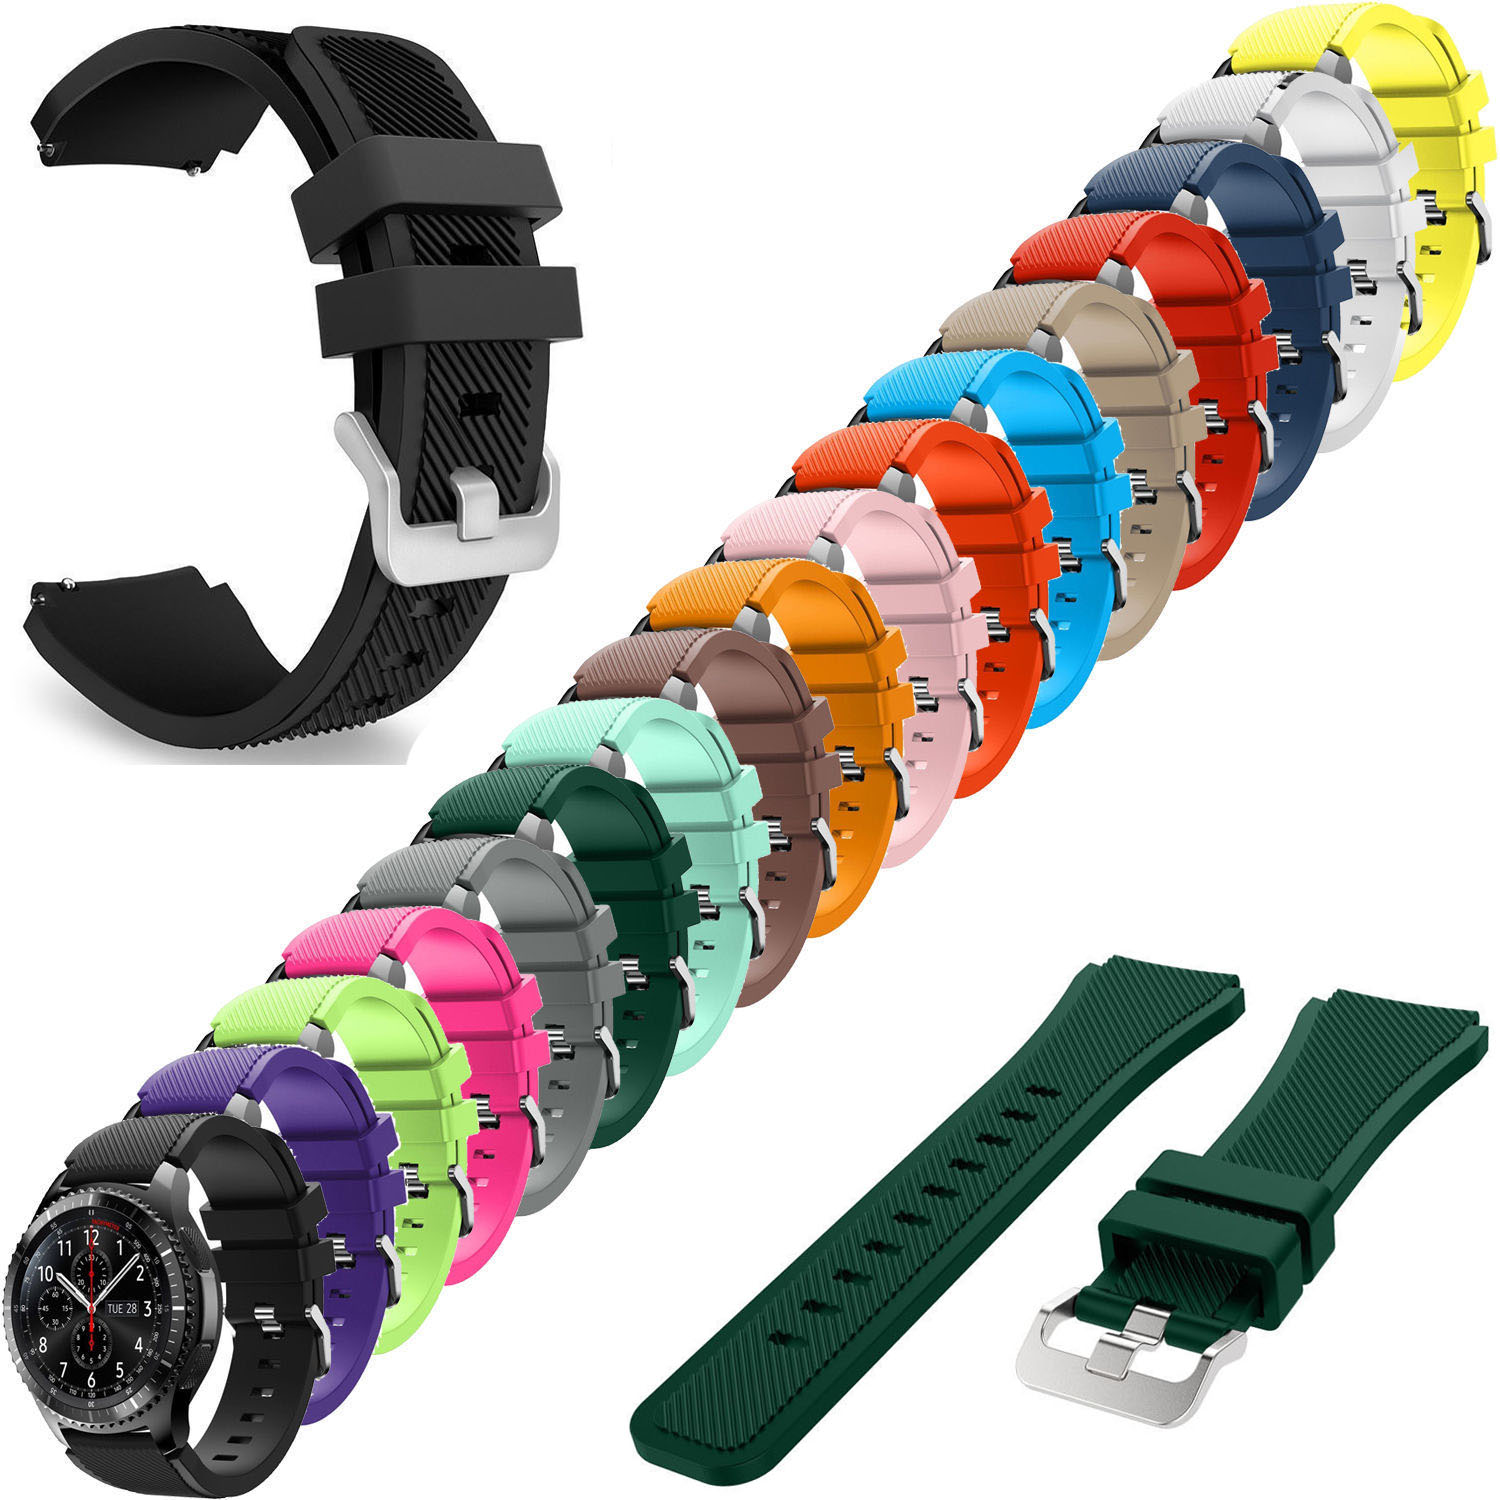 Gear S3 Frontier Strap For Samsung Galaxy Watch 46mm Band Gear S3 Classic Smart Watch Bracelet 22mm Silicone Watchband